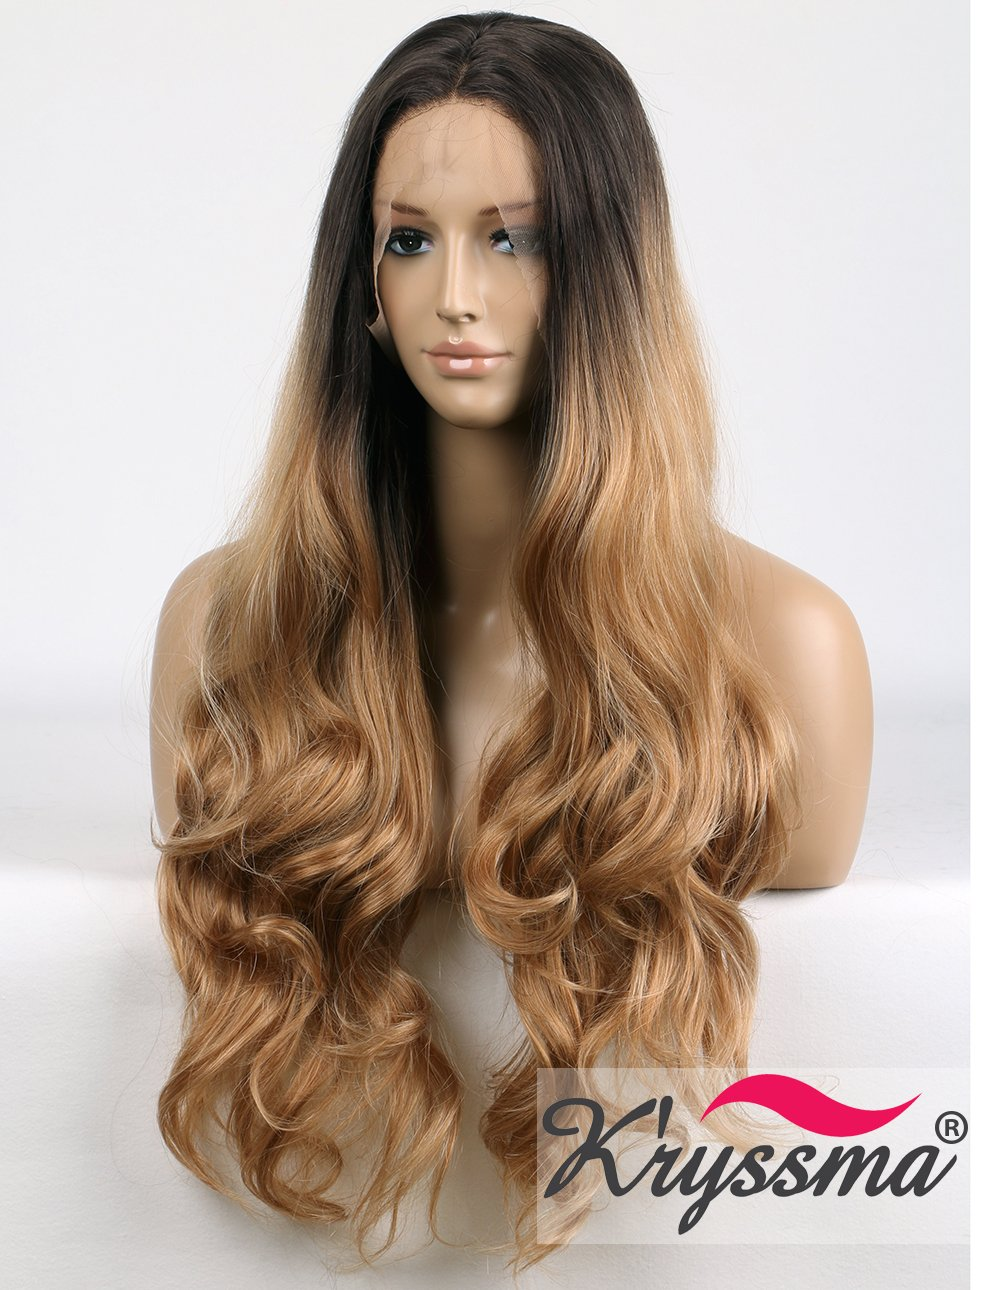 Vnice Honey Blonde Loose Wave Wig Middle Part Synthetic Lace Front Wig Medium Length Heat Resistant Fiber Hair For Women Synthetic Lace Wigs Hair Extensions & Wigs